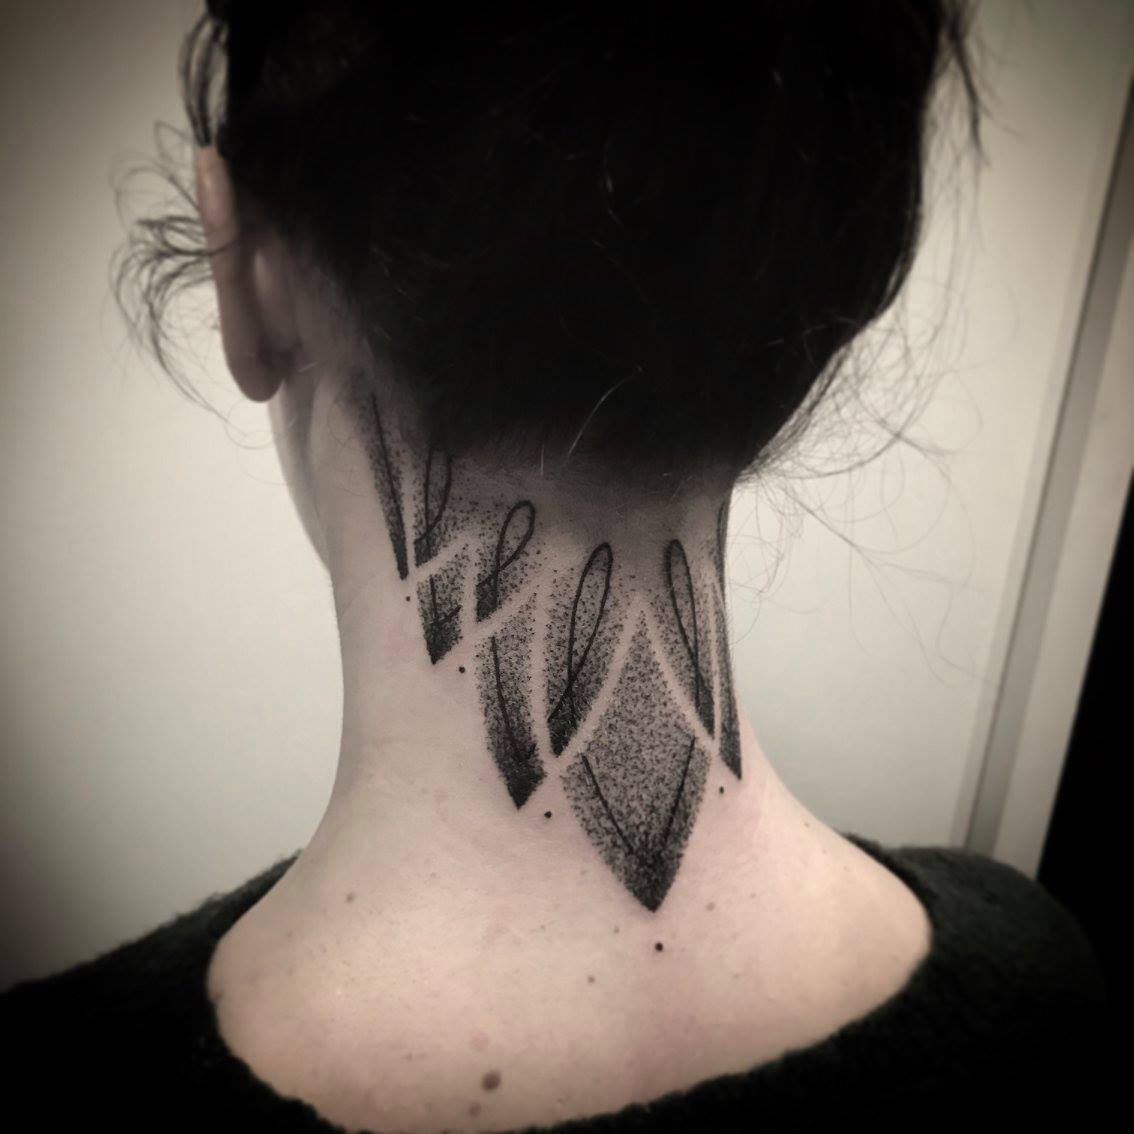 Dotwork ornament tattoo on the neck